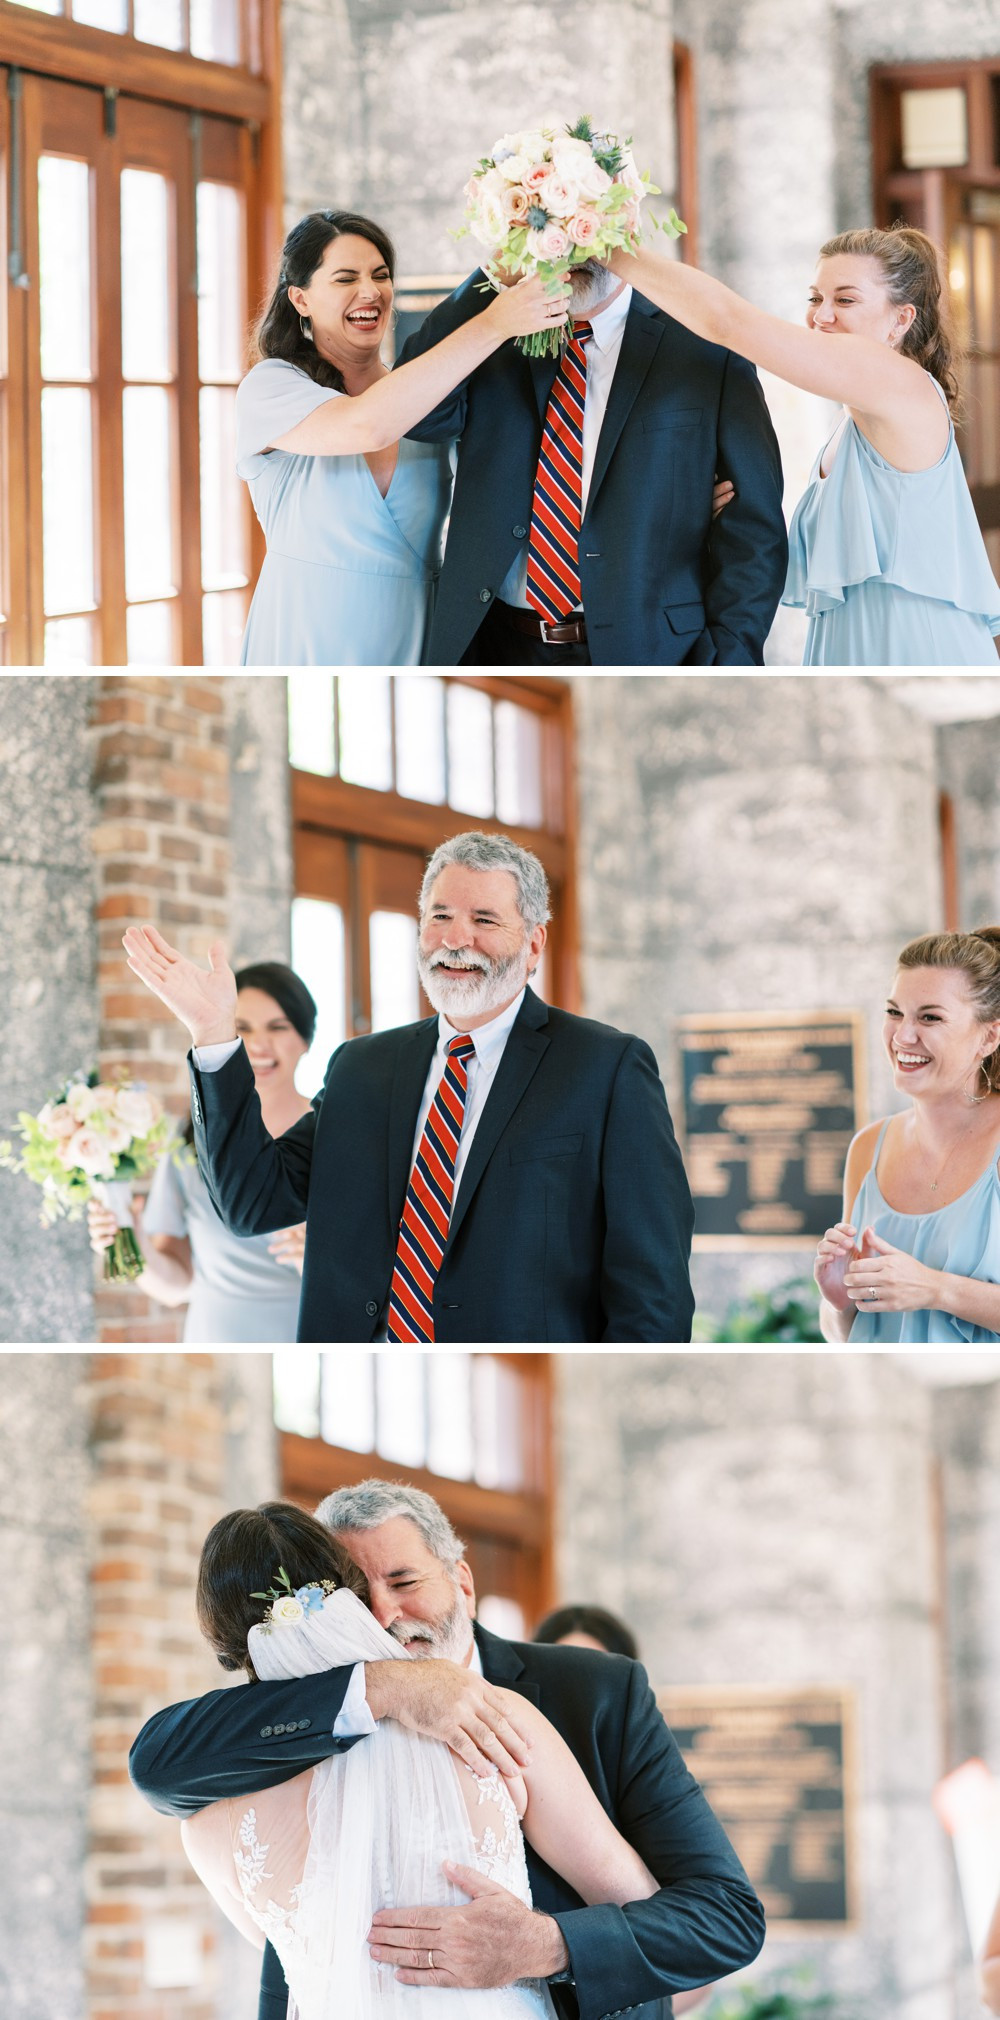 the sweetest father-daughter first look on wedding day at st simons island wedding wesley methodist church